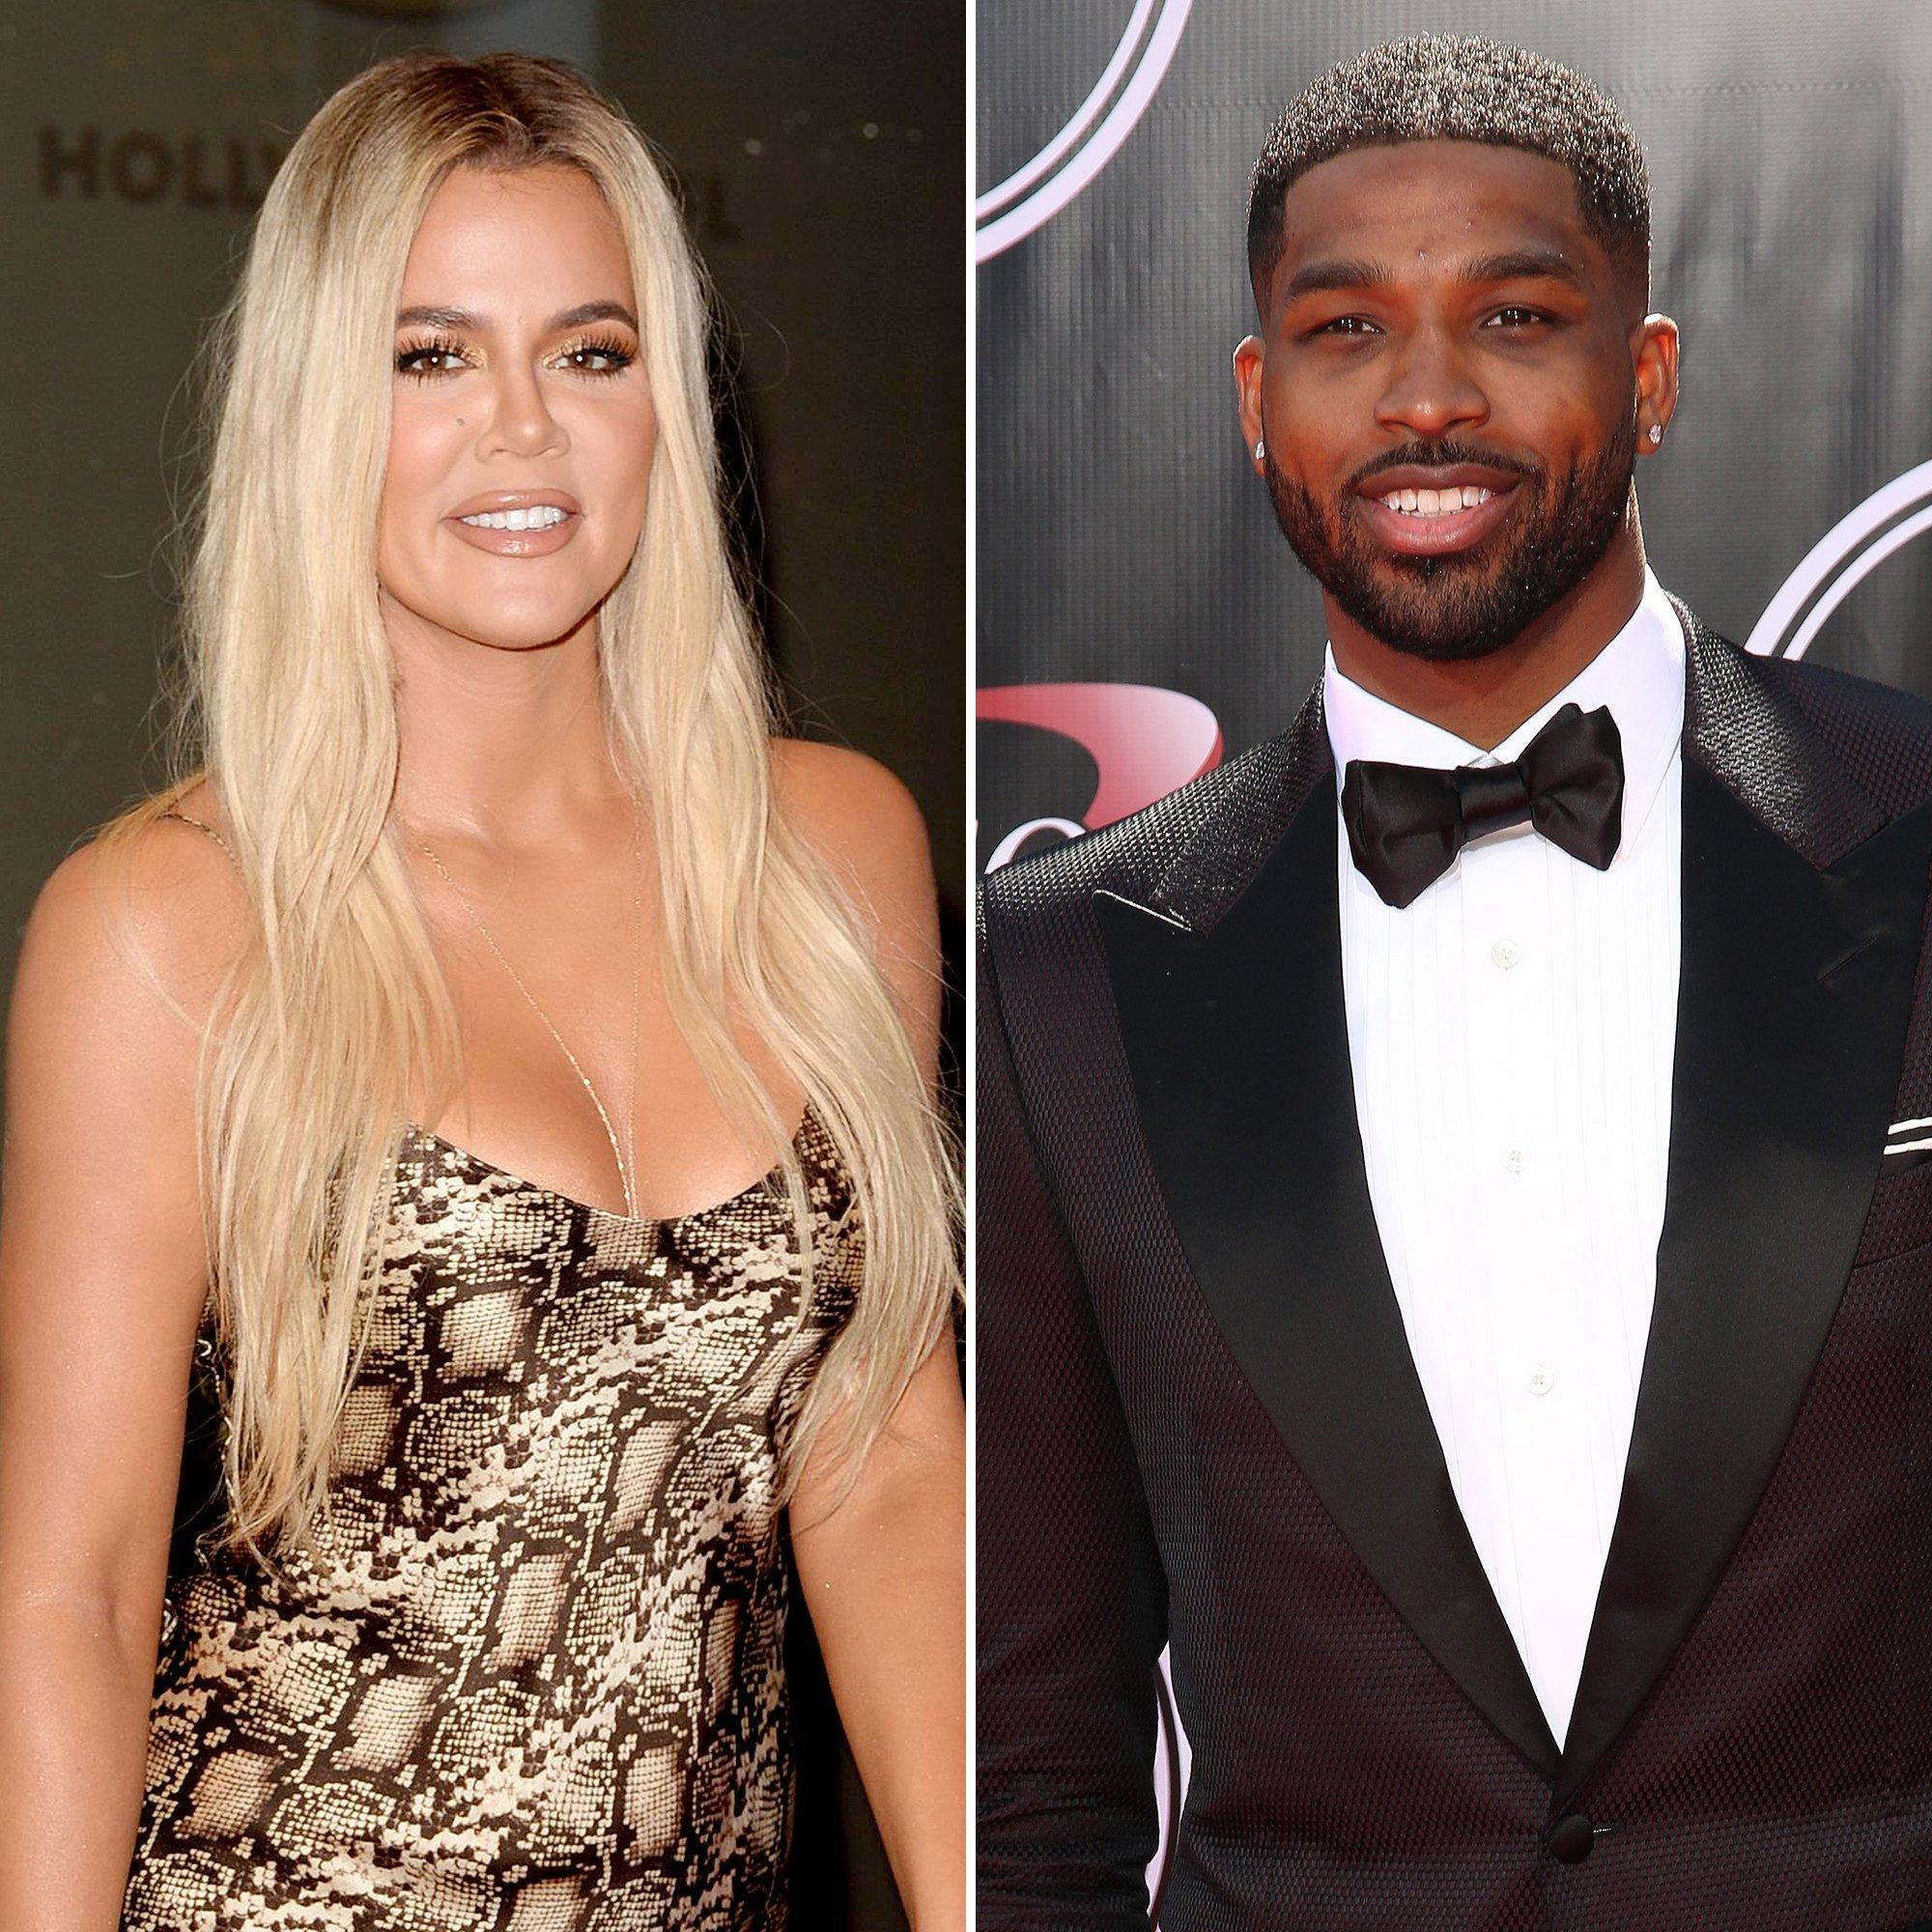 KUWTK: Khloe Kardashian Reportedly 'Open' To Marrying Tristan Thompson!